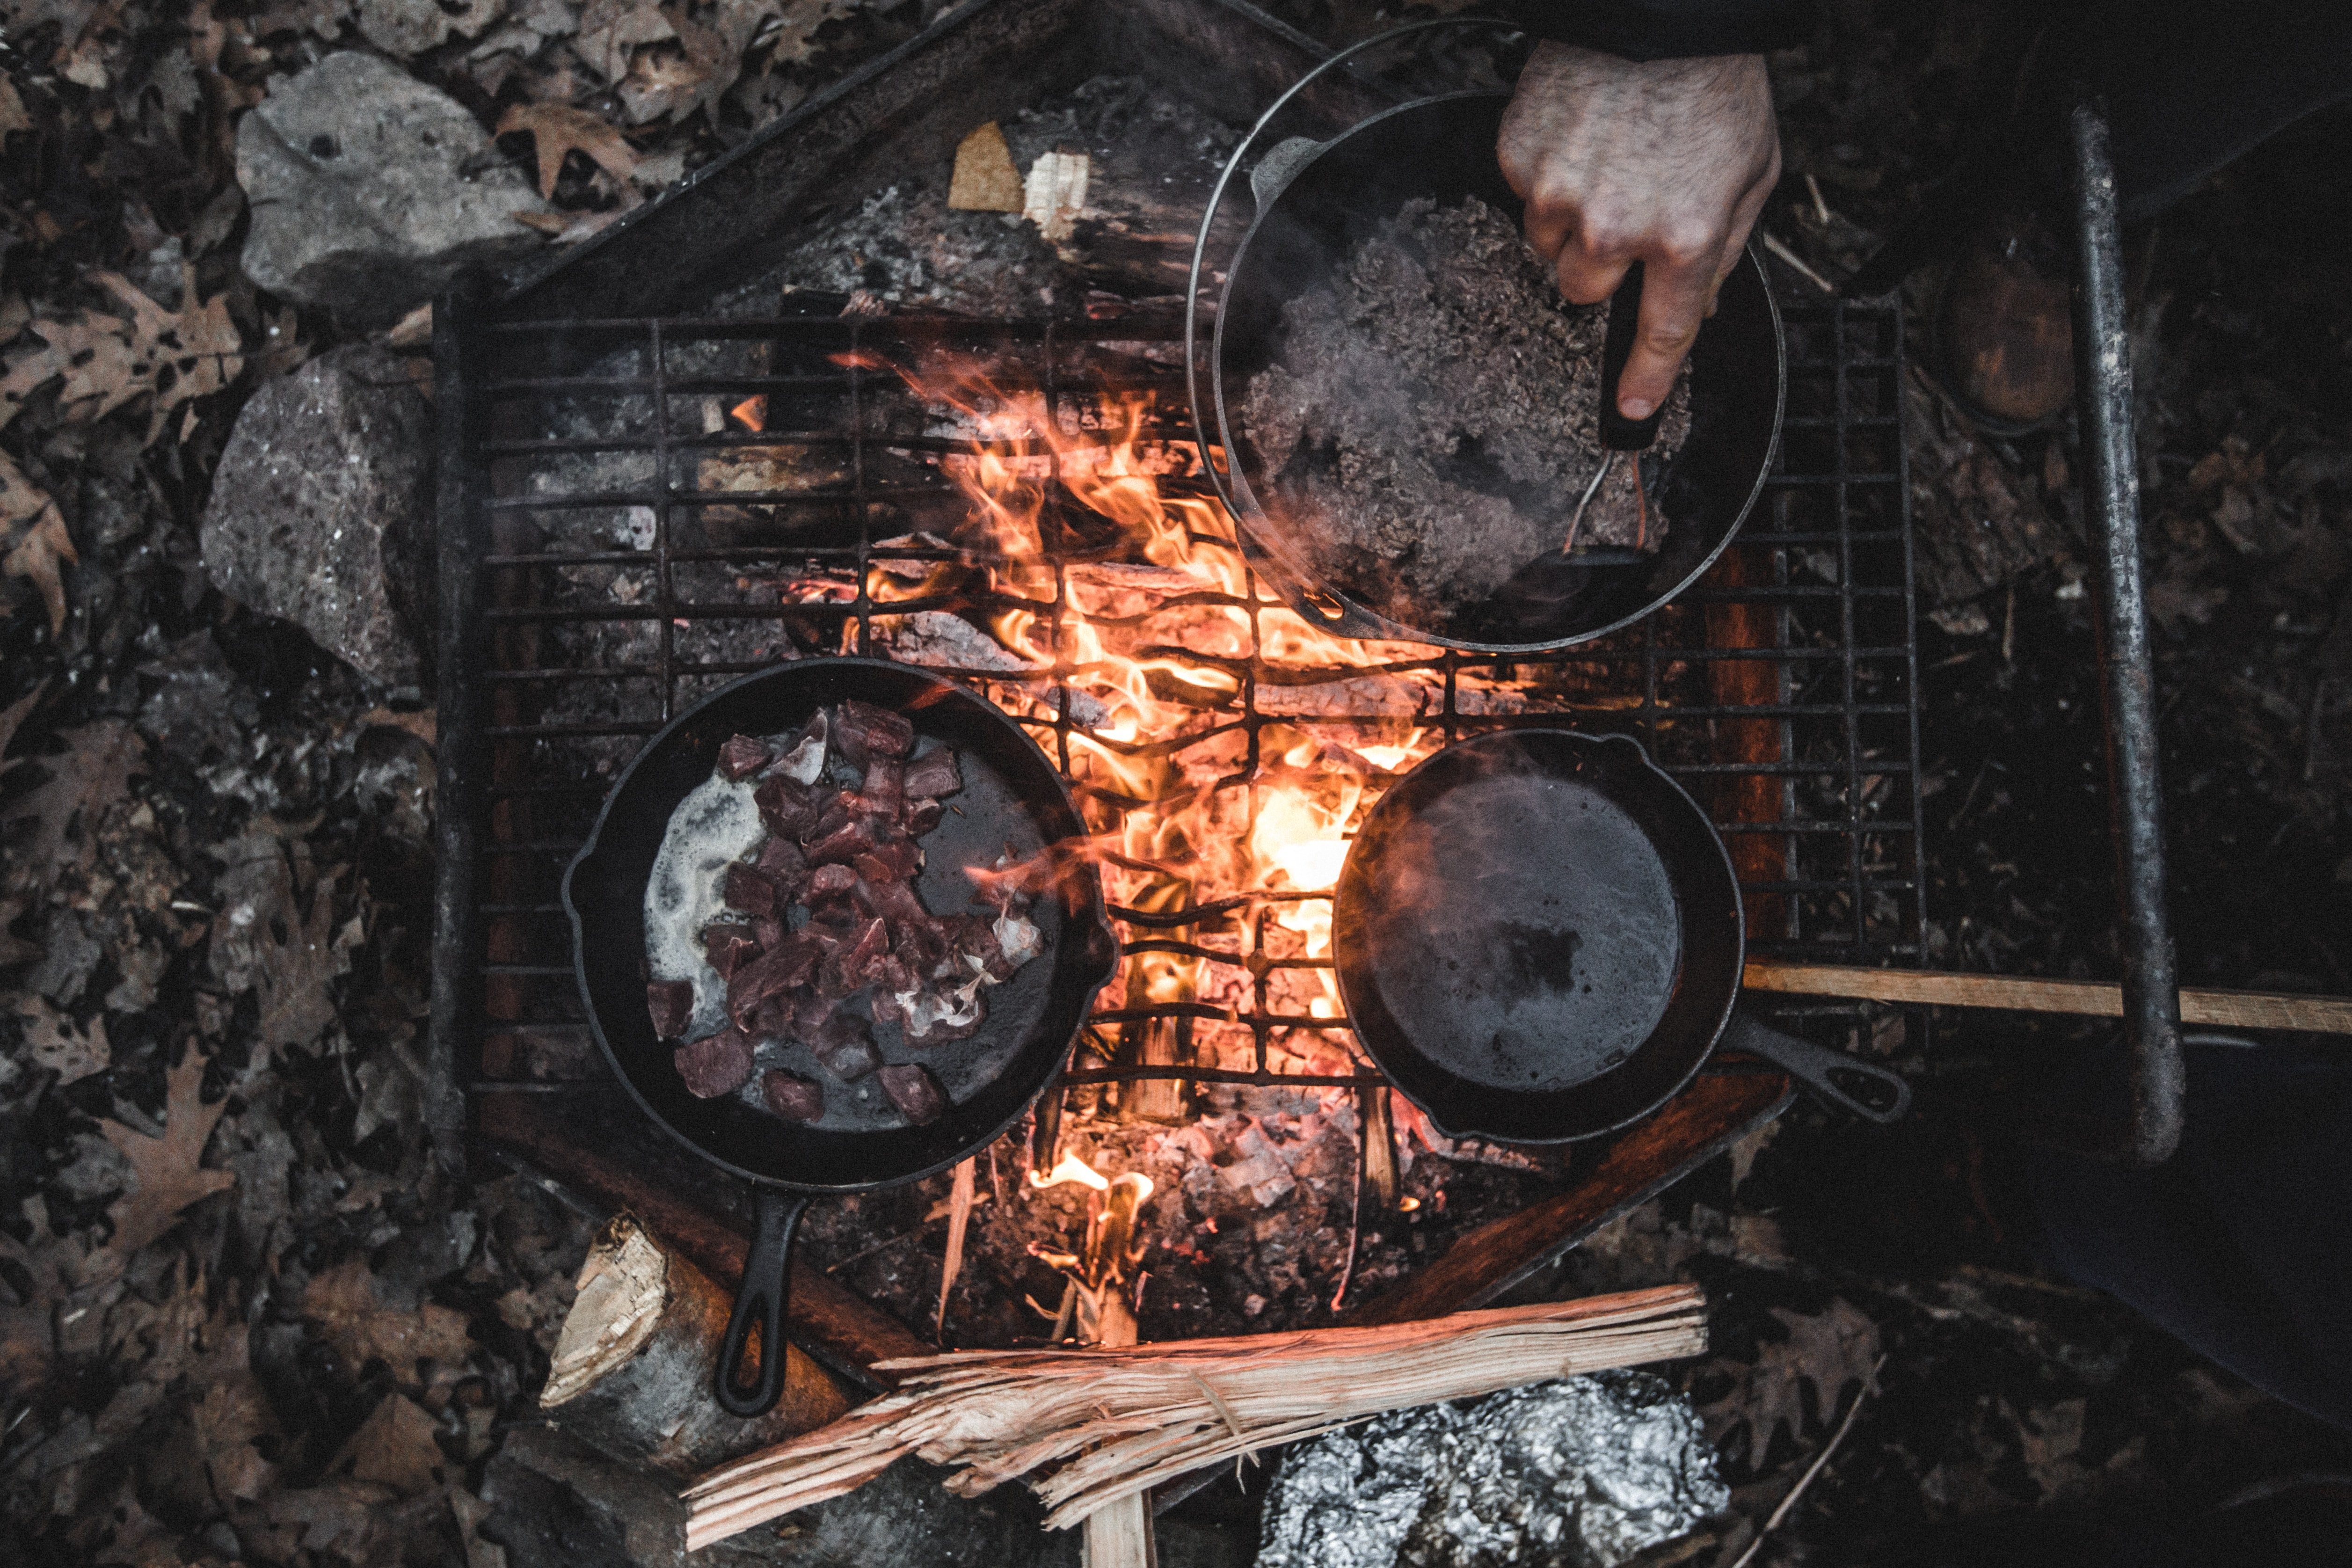 Two cast iron pans and a pot of water over an outdoor fire-lit stove outdoors with a hand mixing the water